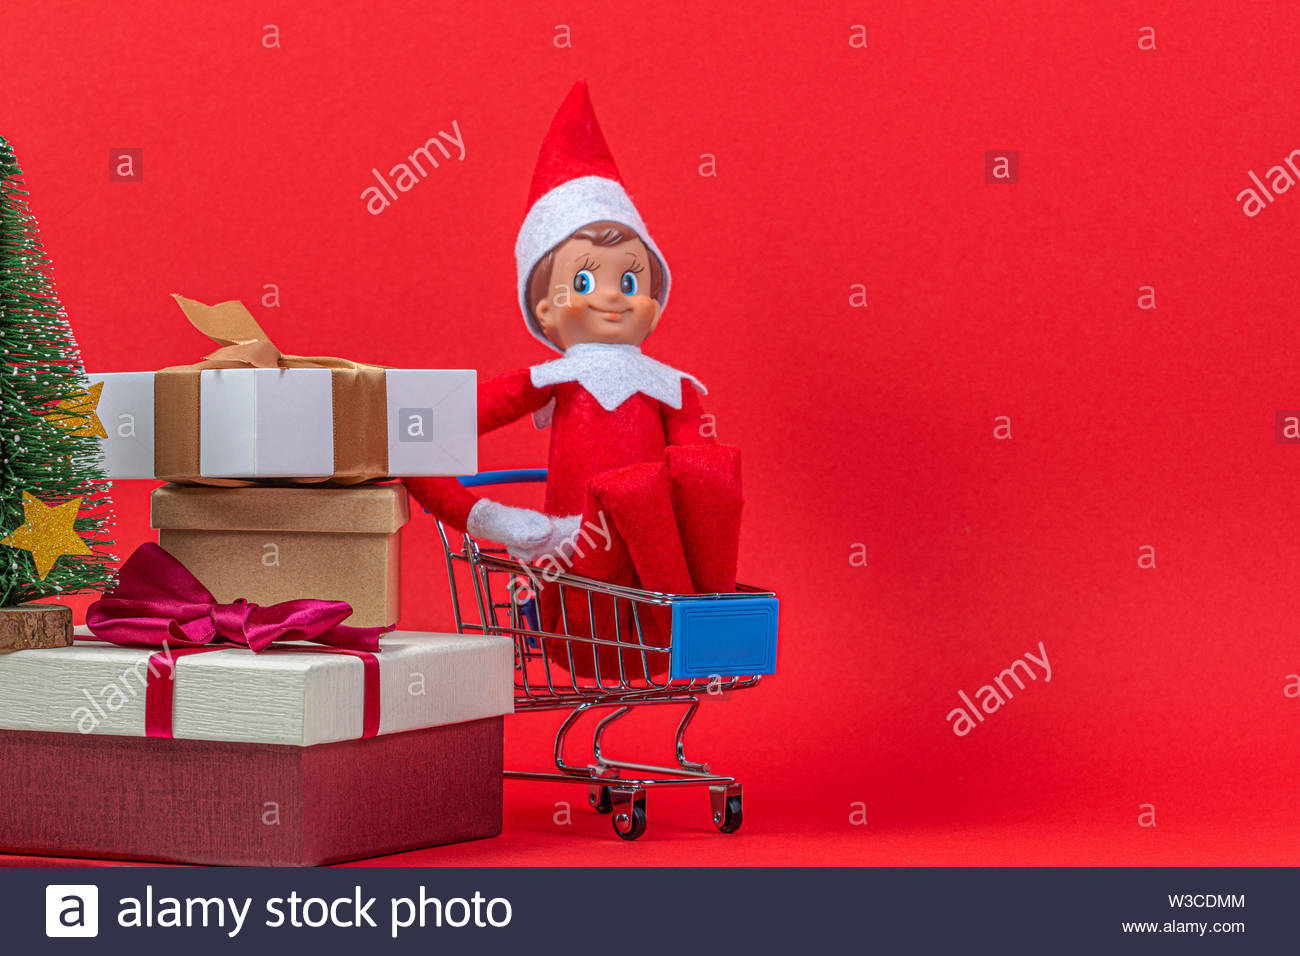 Christmas presents background. Christmas toy elf on shelf sitting in mini shopping cart on red background - Stock Image